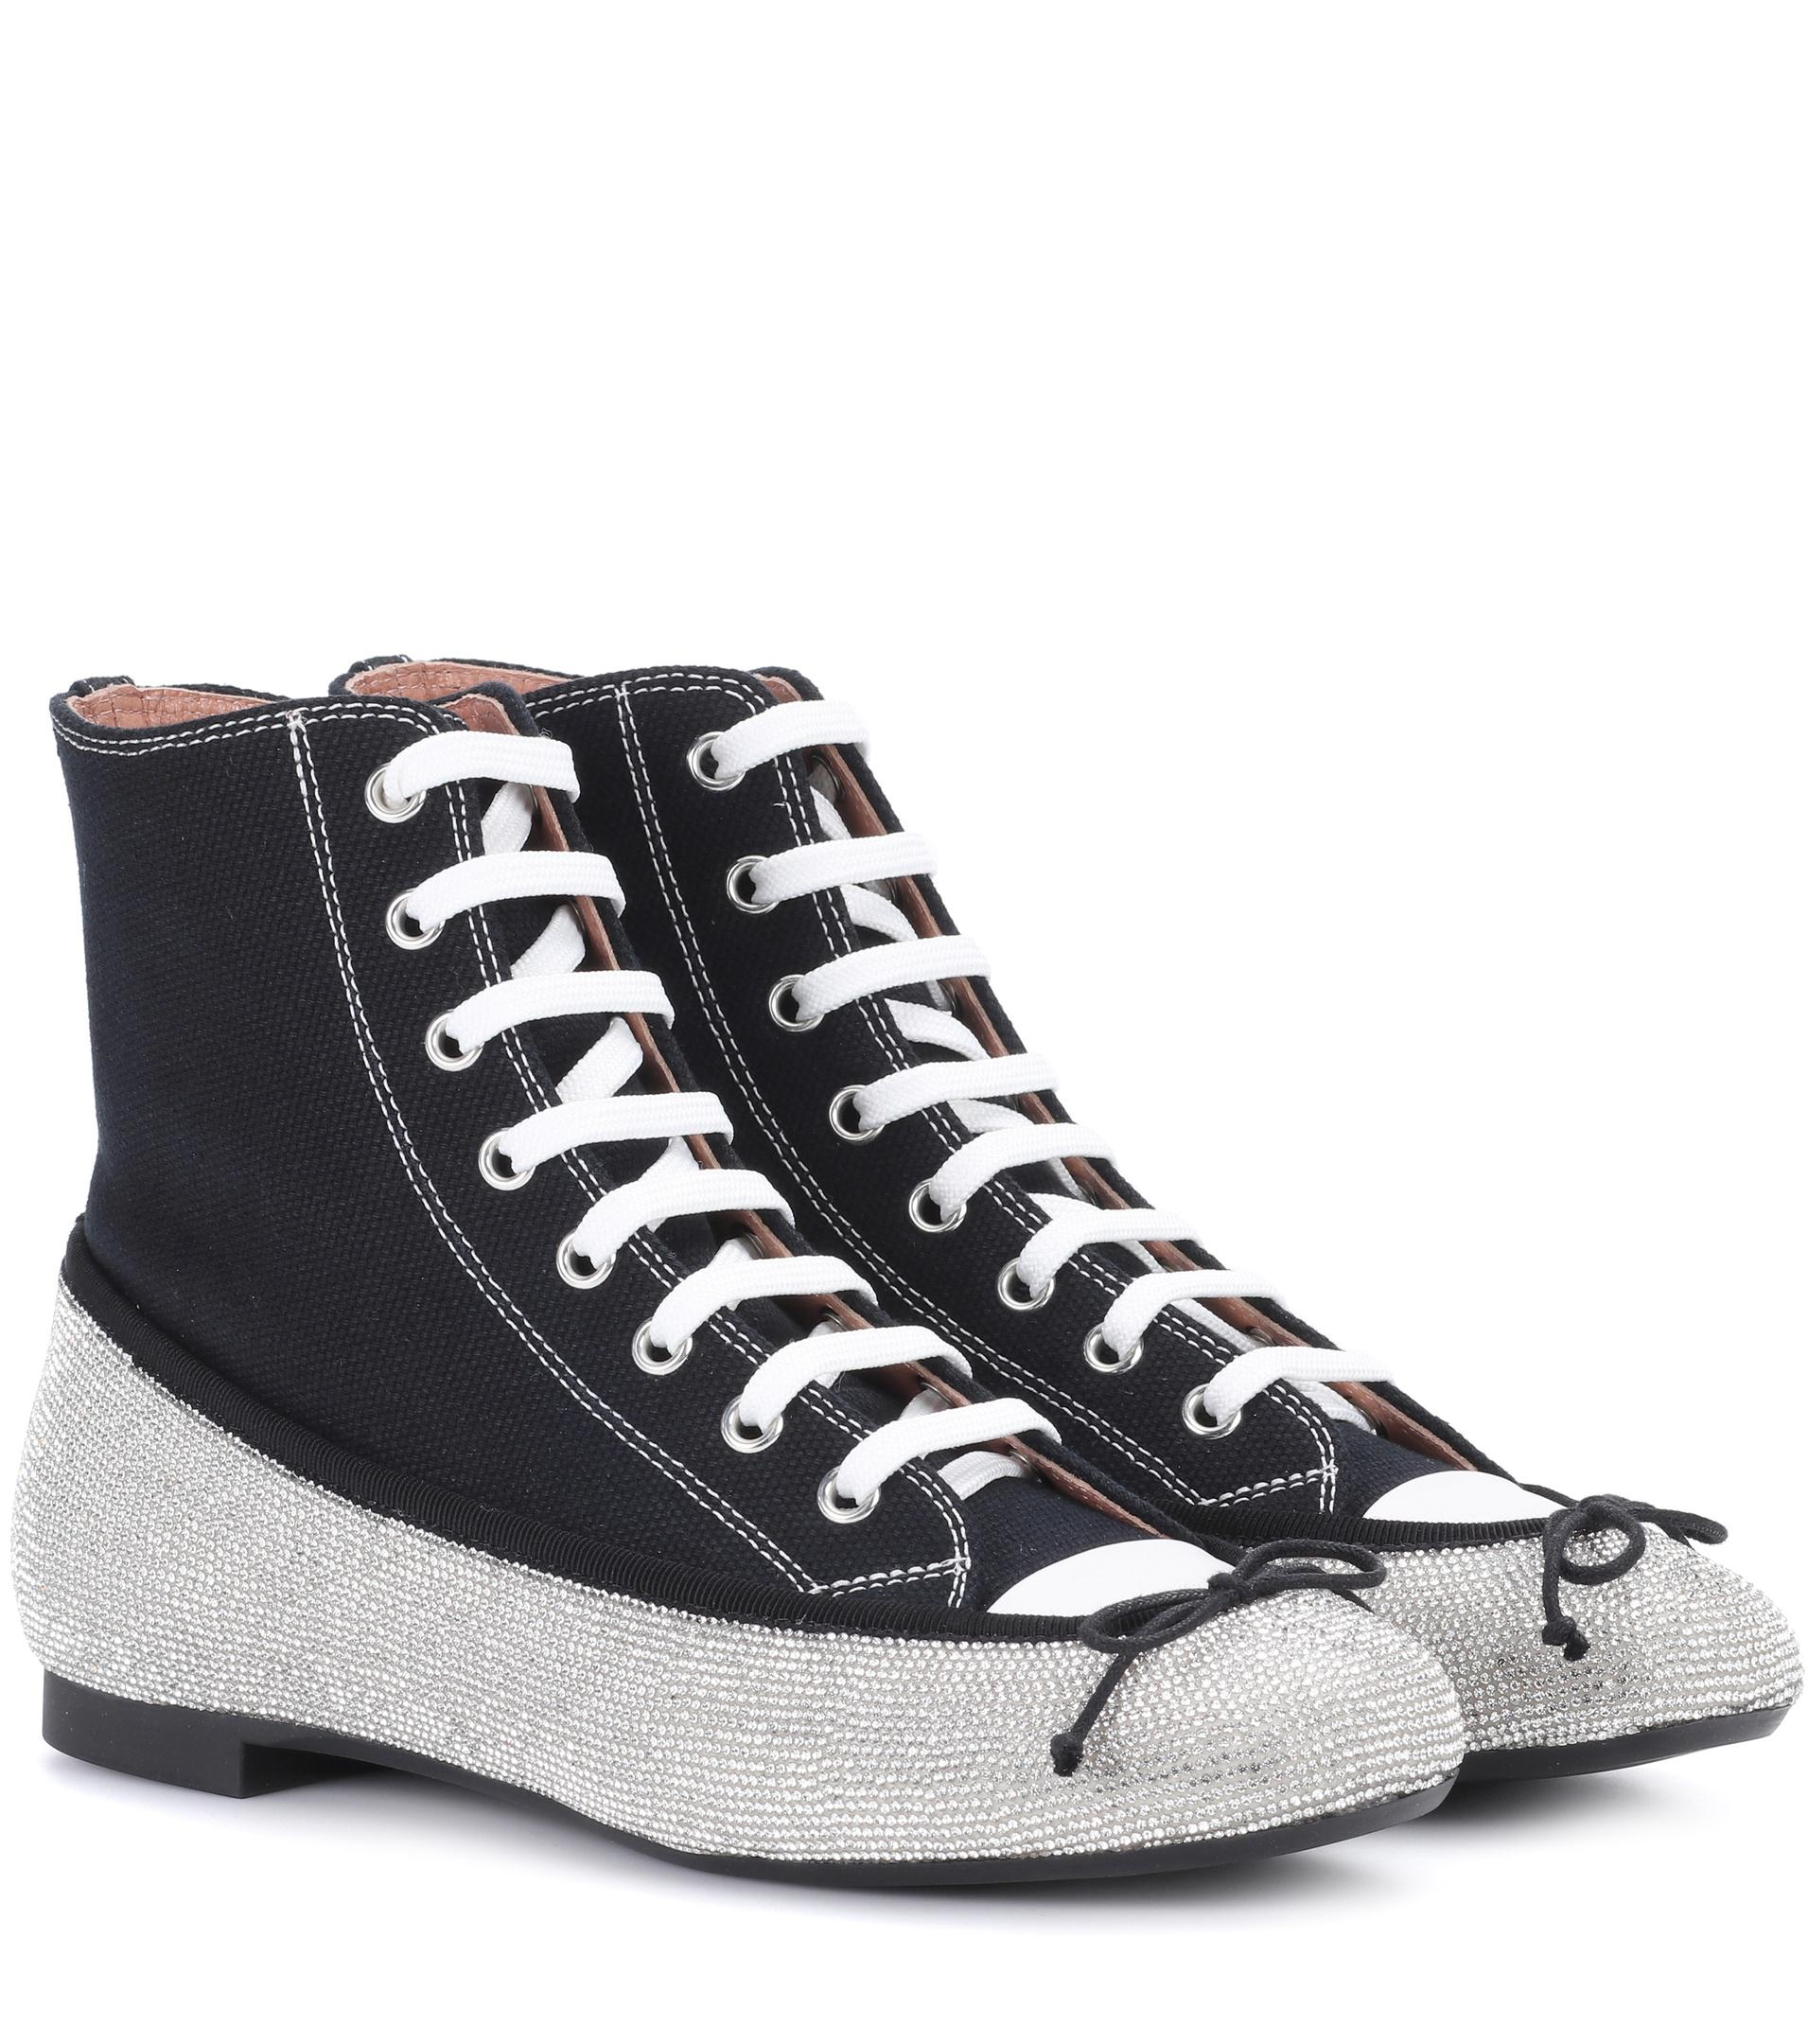 MARCO DE VINCENZO Embellished sneakers 1Bxq16cc